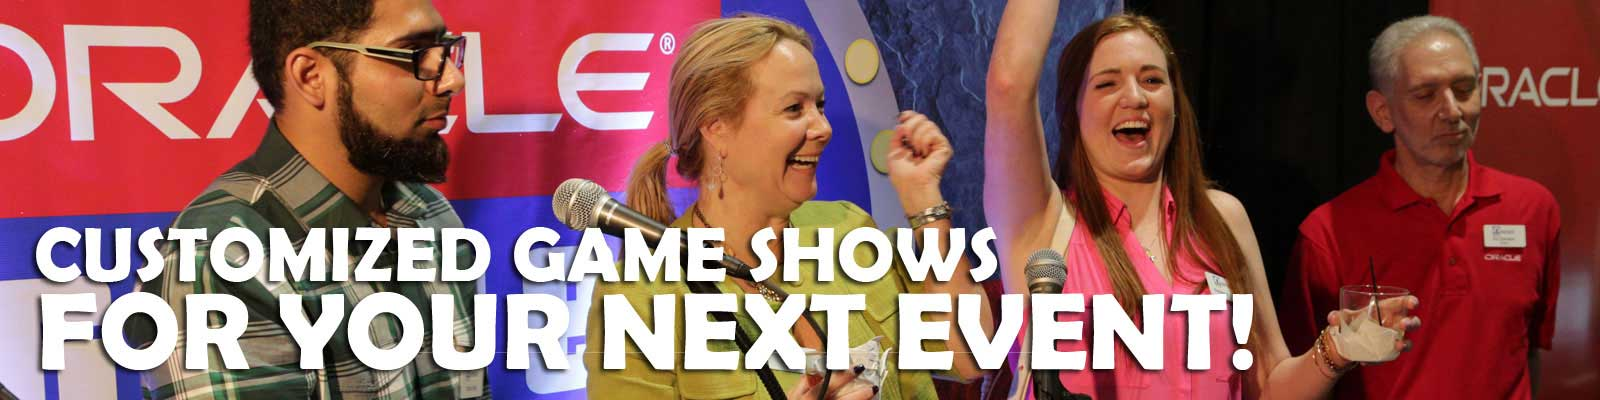 Team Building Game Show Corporate Events | Game Show Connection